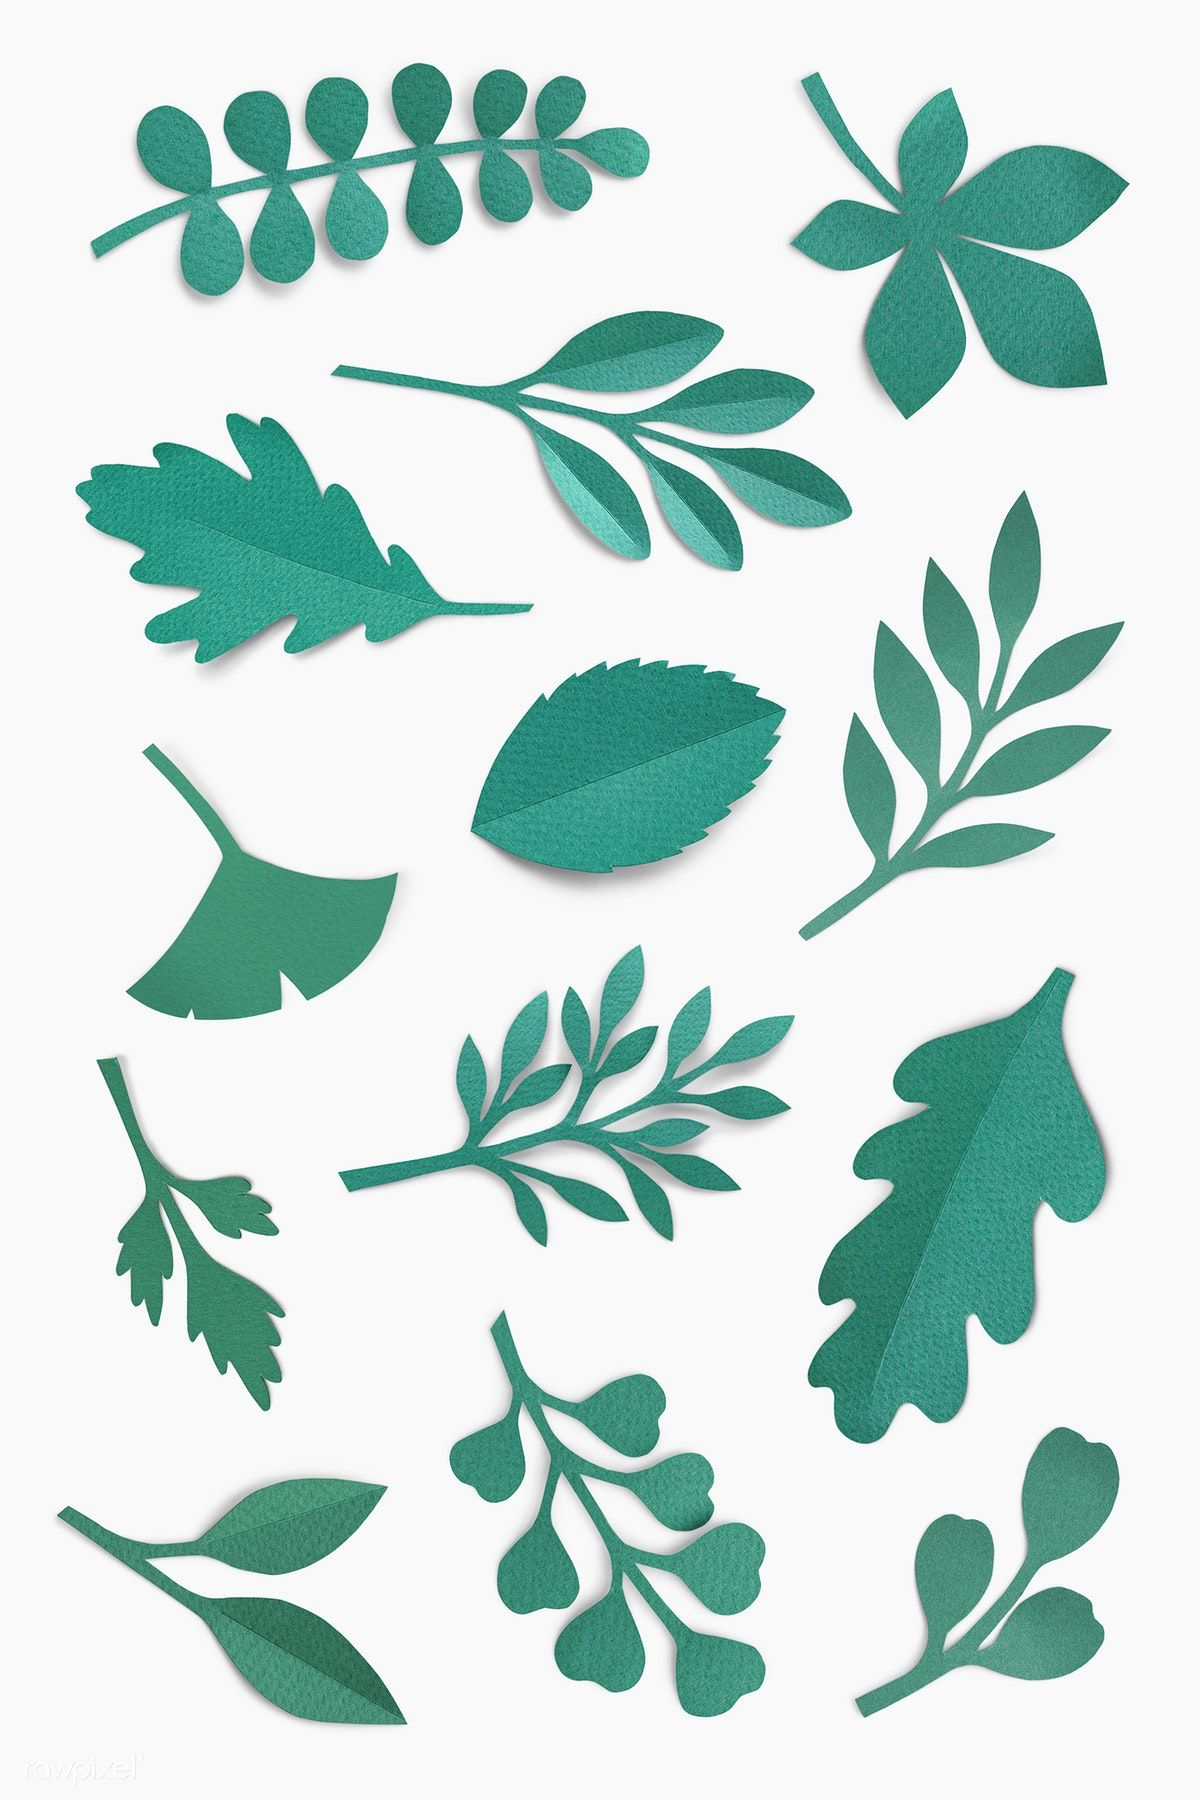 Download premium psd of Green paper craft leaf pattern on white background